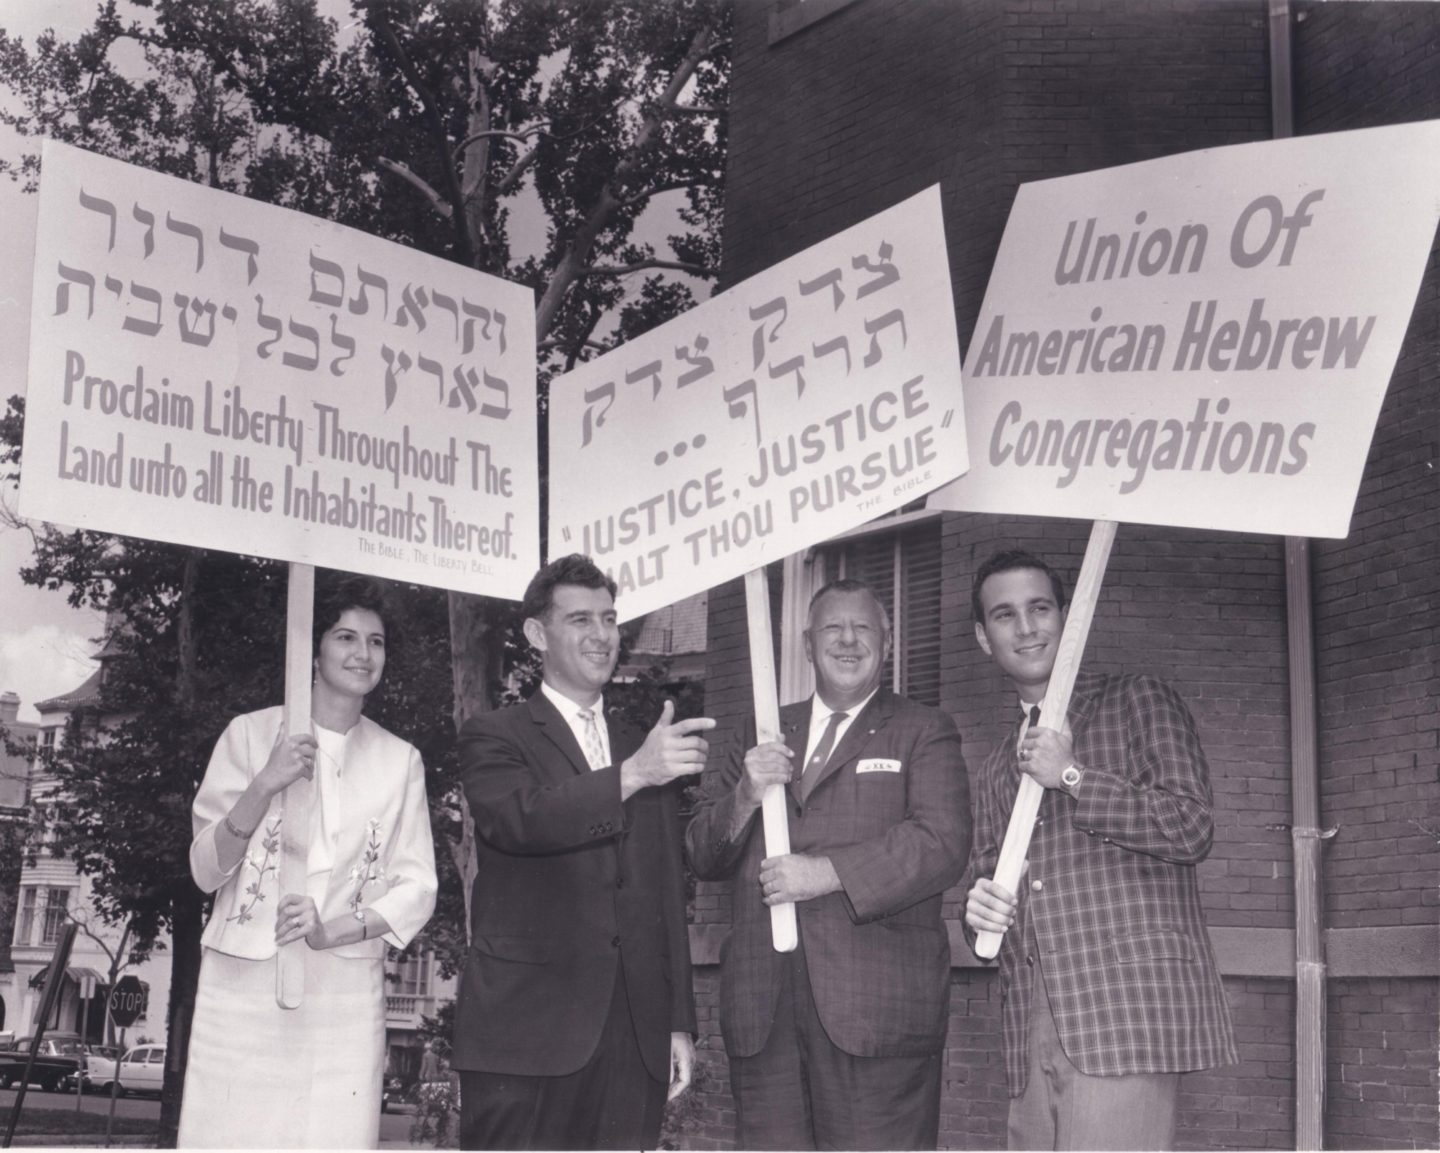 "<p>Jewish protesters at a 1963 march for Black civil rights (via&nbsp;<a href=""http://blogs.rj.org/rac/files/2014/04/63-civilrt.smarch.jpg""><span class=""caps"">RJ</span>.org</a>)</p>"